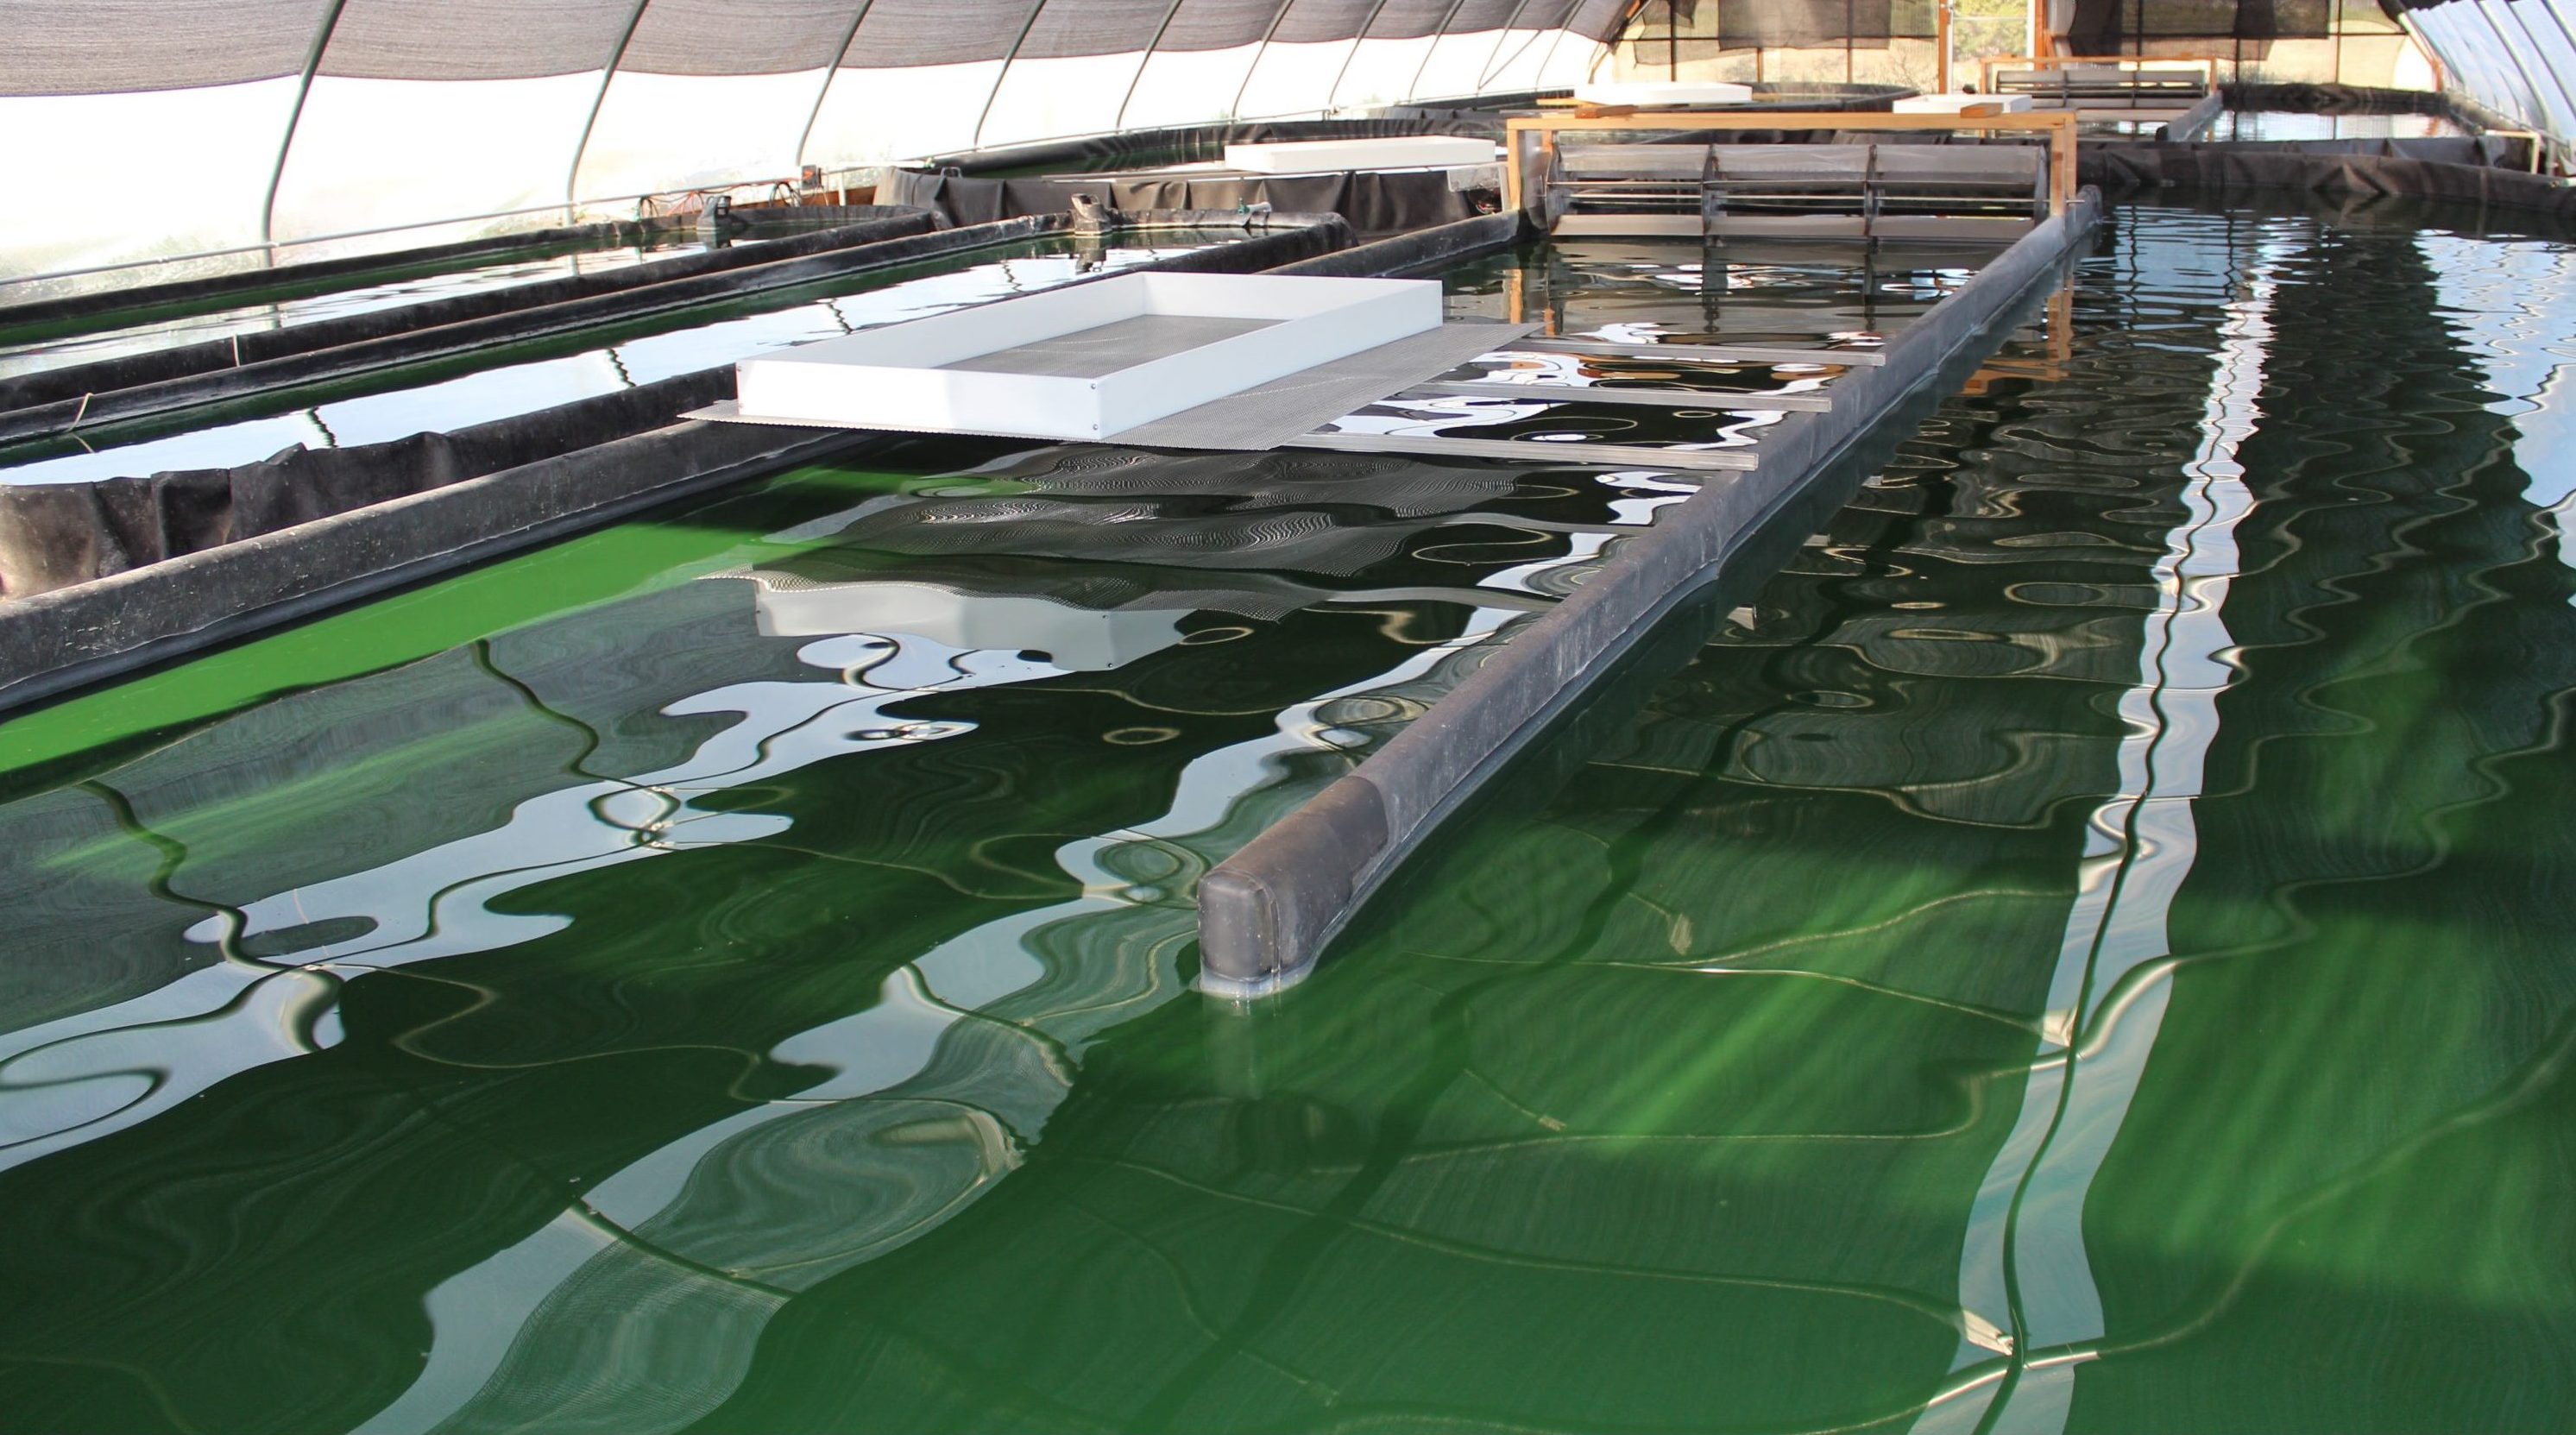 Apogee Spirulina Farm in Santa Fe, New Mexico